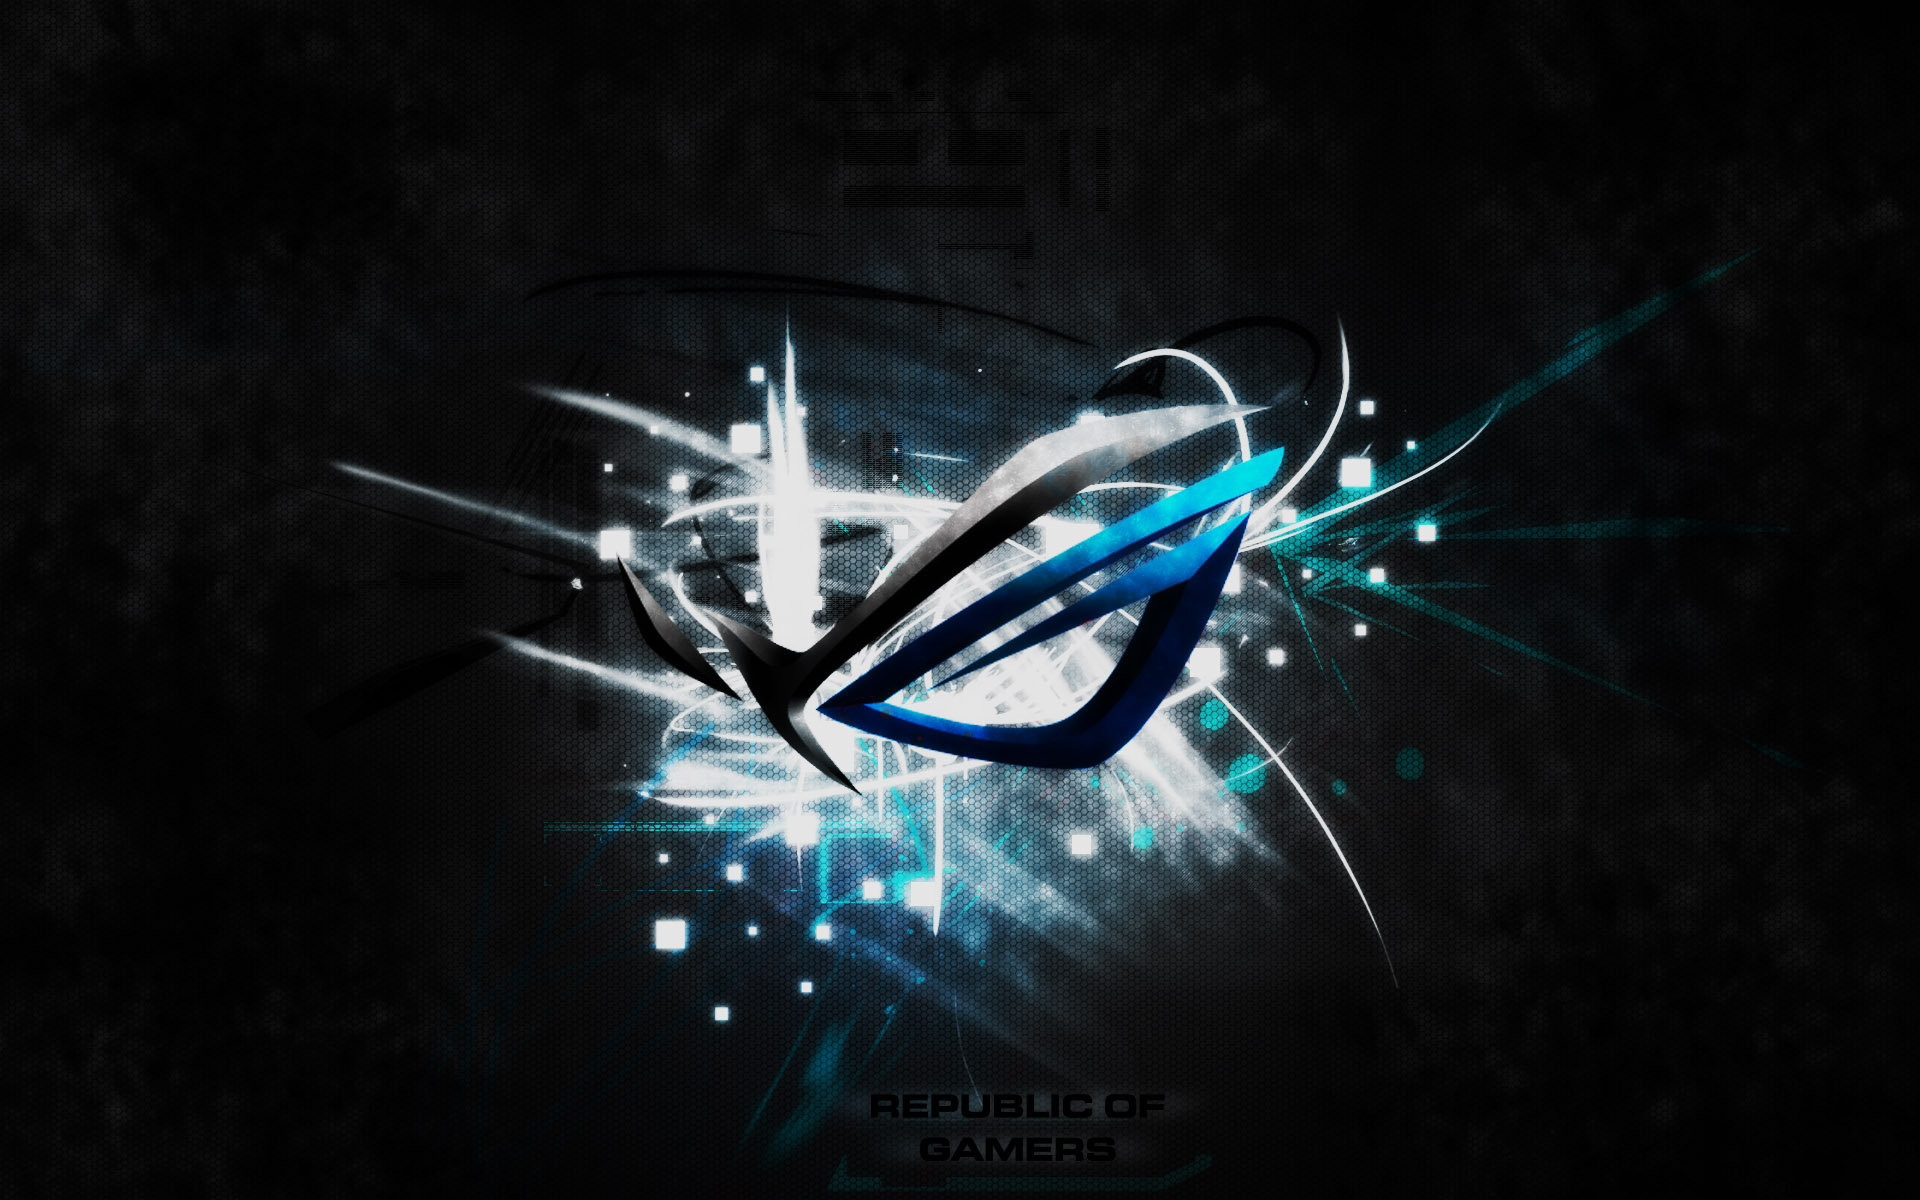 Gamer Wallpaper for My Desktop  68  images  1920x1080 Hd Game Wallpapers 1920 1080 22 Game Gaming Pc Mac Android Games